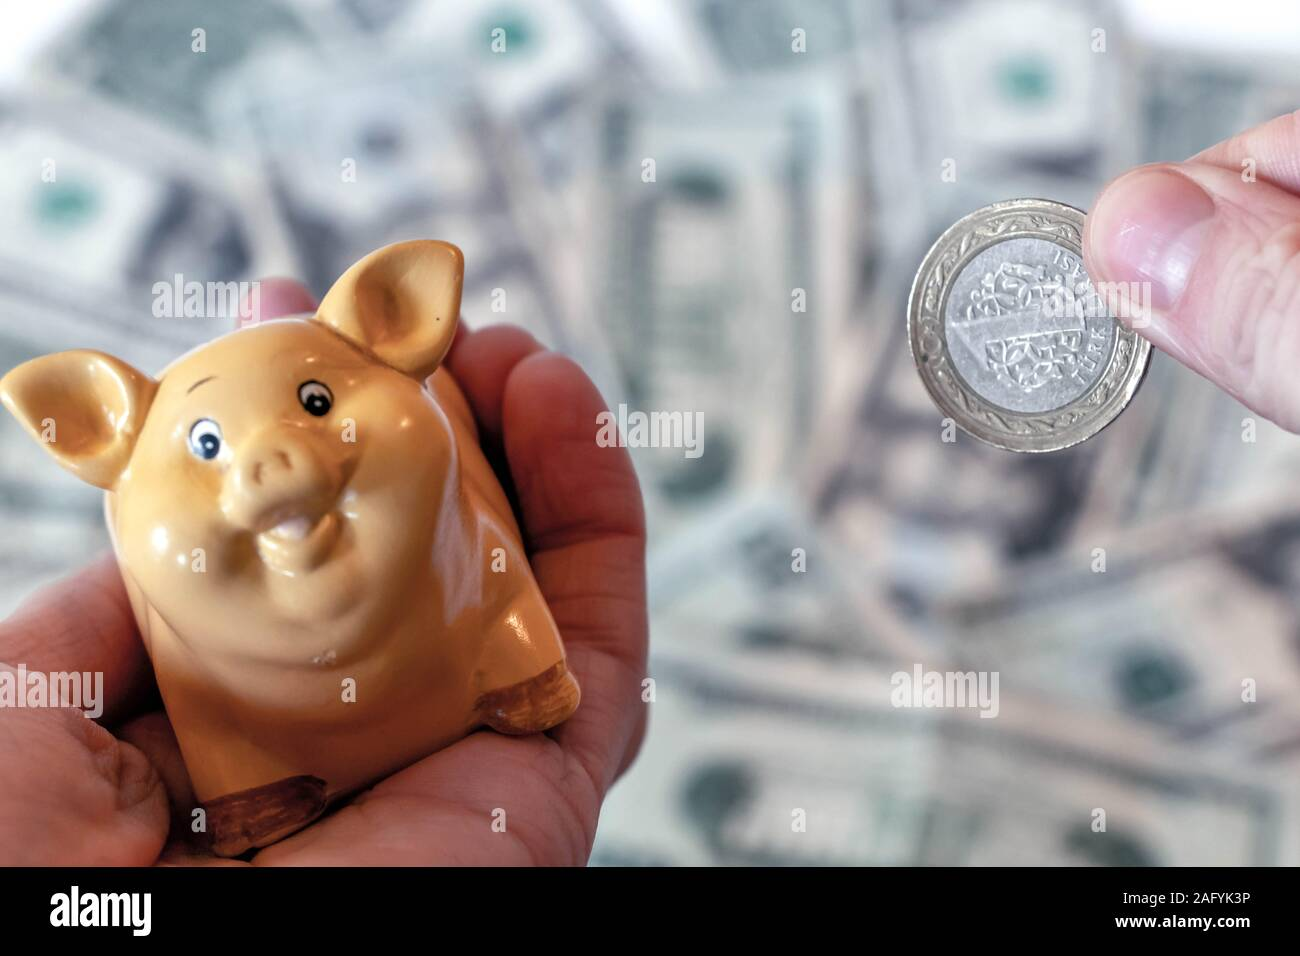 Turkish lira TRY coins and banknotes against background of american dollar USD banknotes and some russian ruble RUB coins Stock Photo